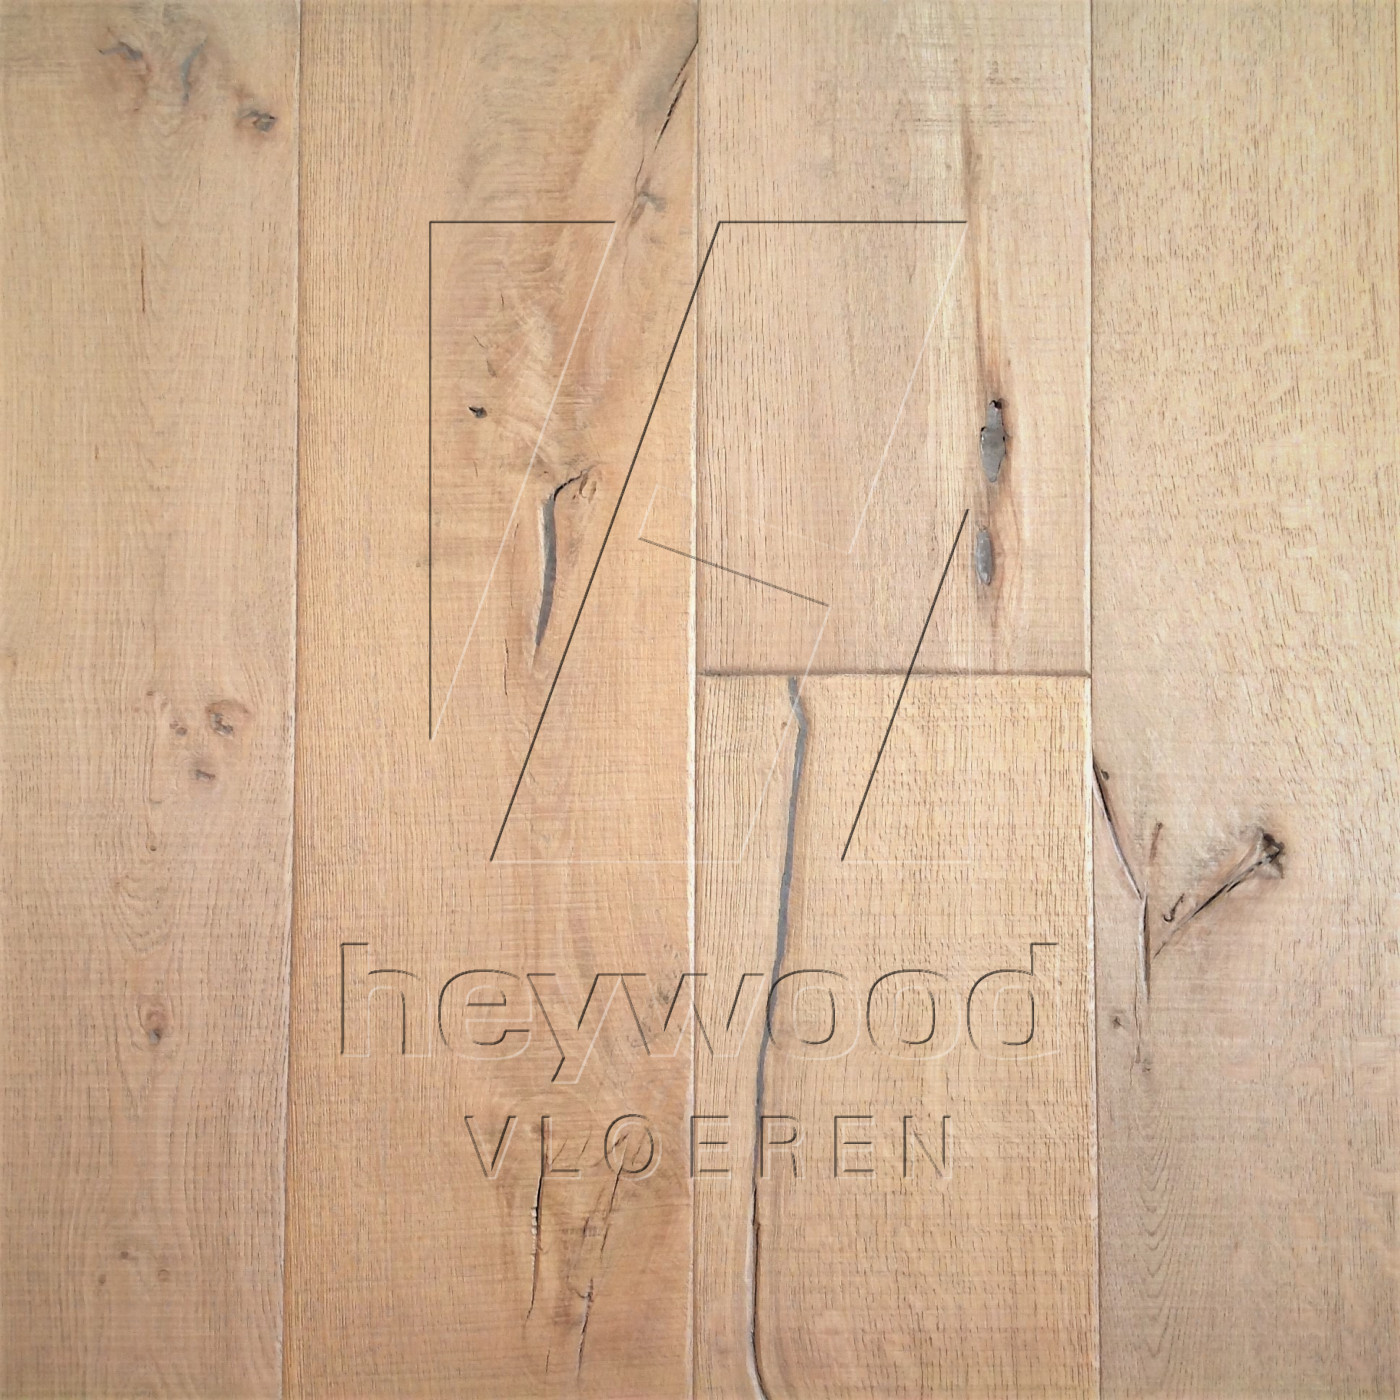 Knotting Hill Plank 'Lyngmark' in Aged Knotting Hill Surface of Aged Hardwood Floors